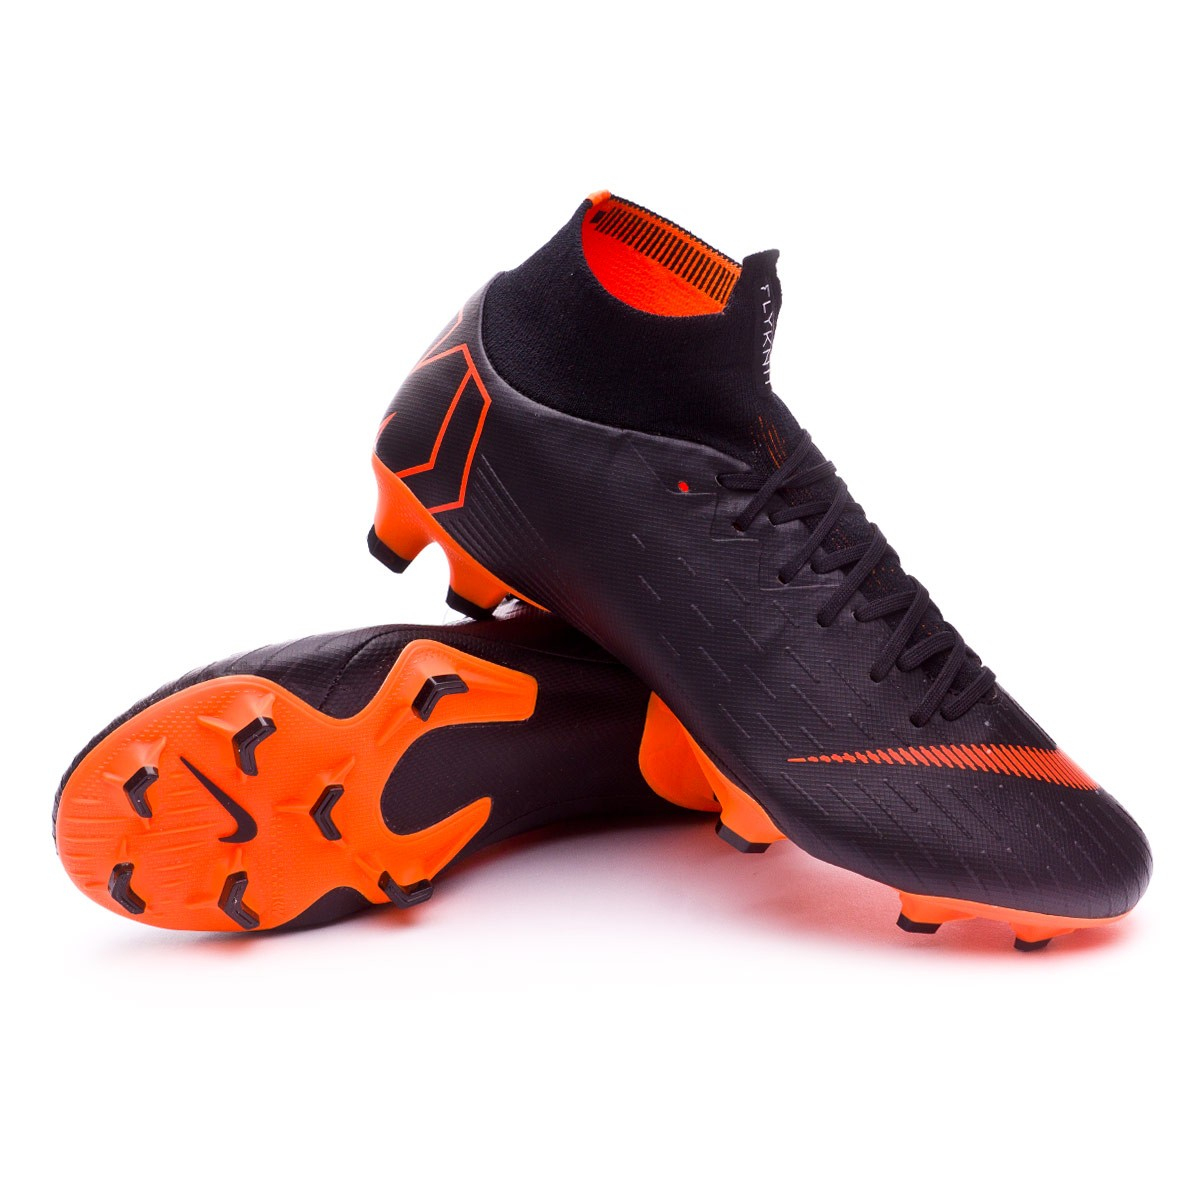 b97d2f887f31 Bota Mercurial Superfly VI Pro FG Black-Total orange-White